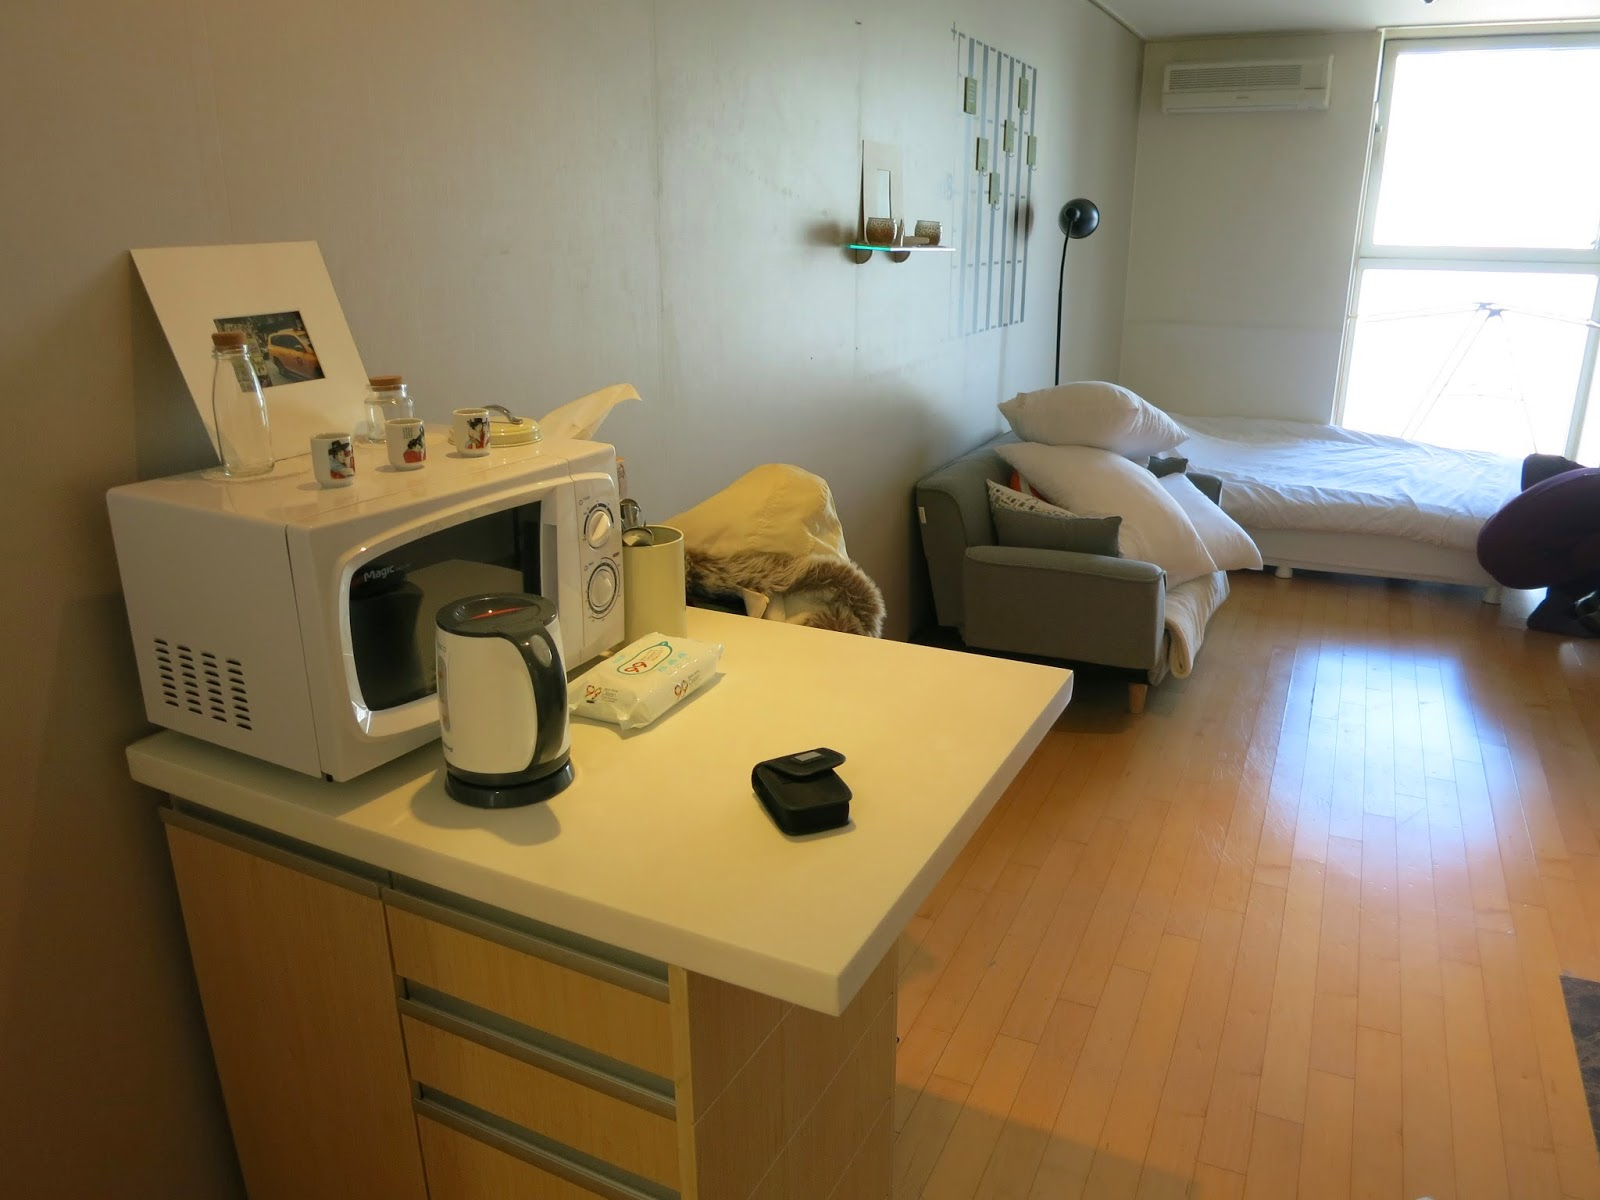 Seoulians' Studio in Hongdae booked on Airbnb